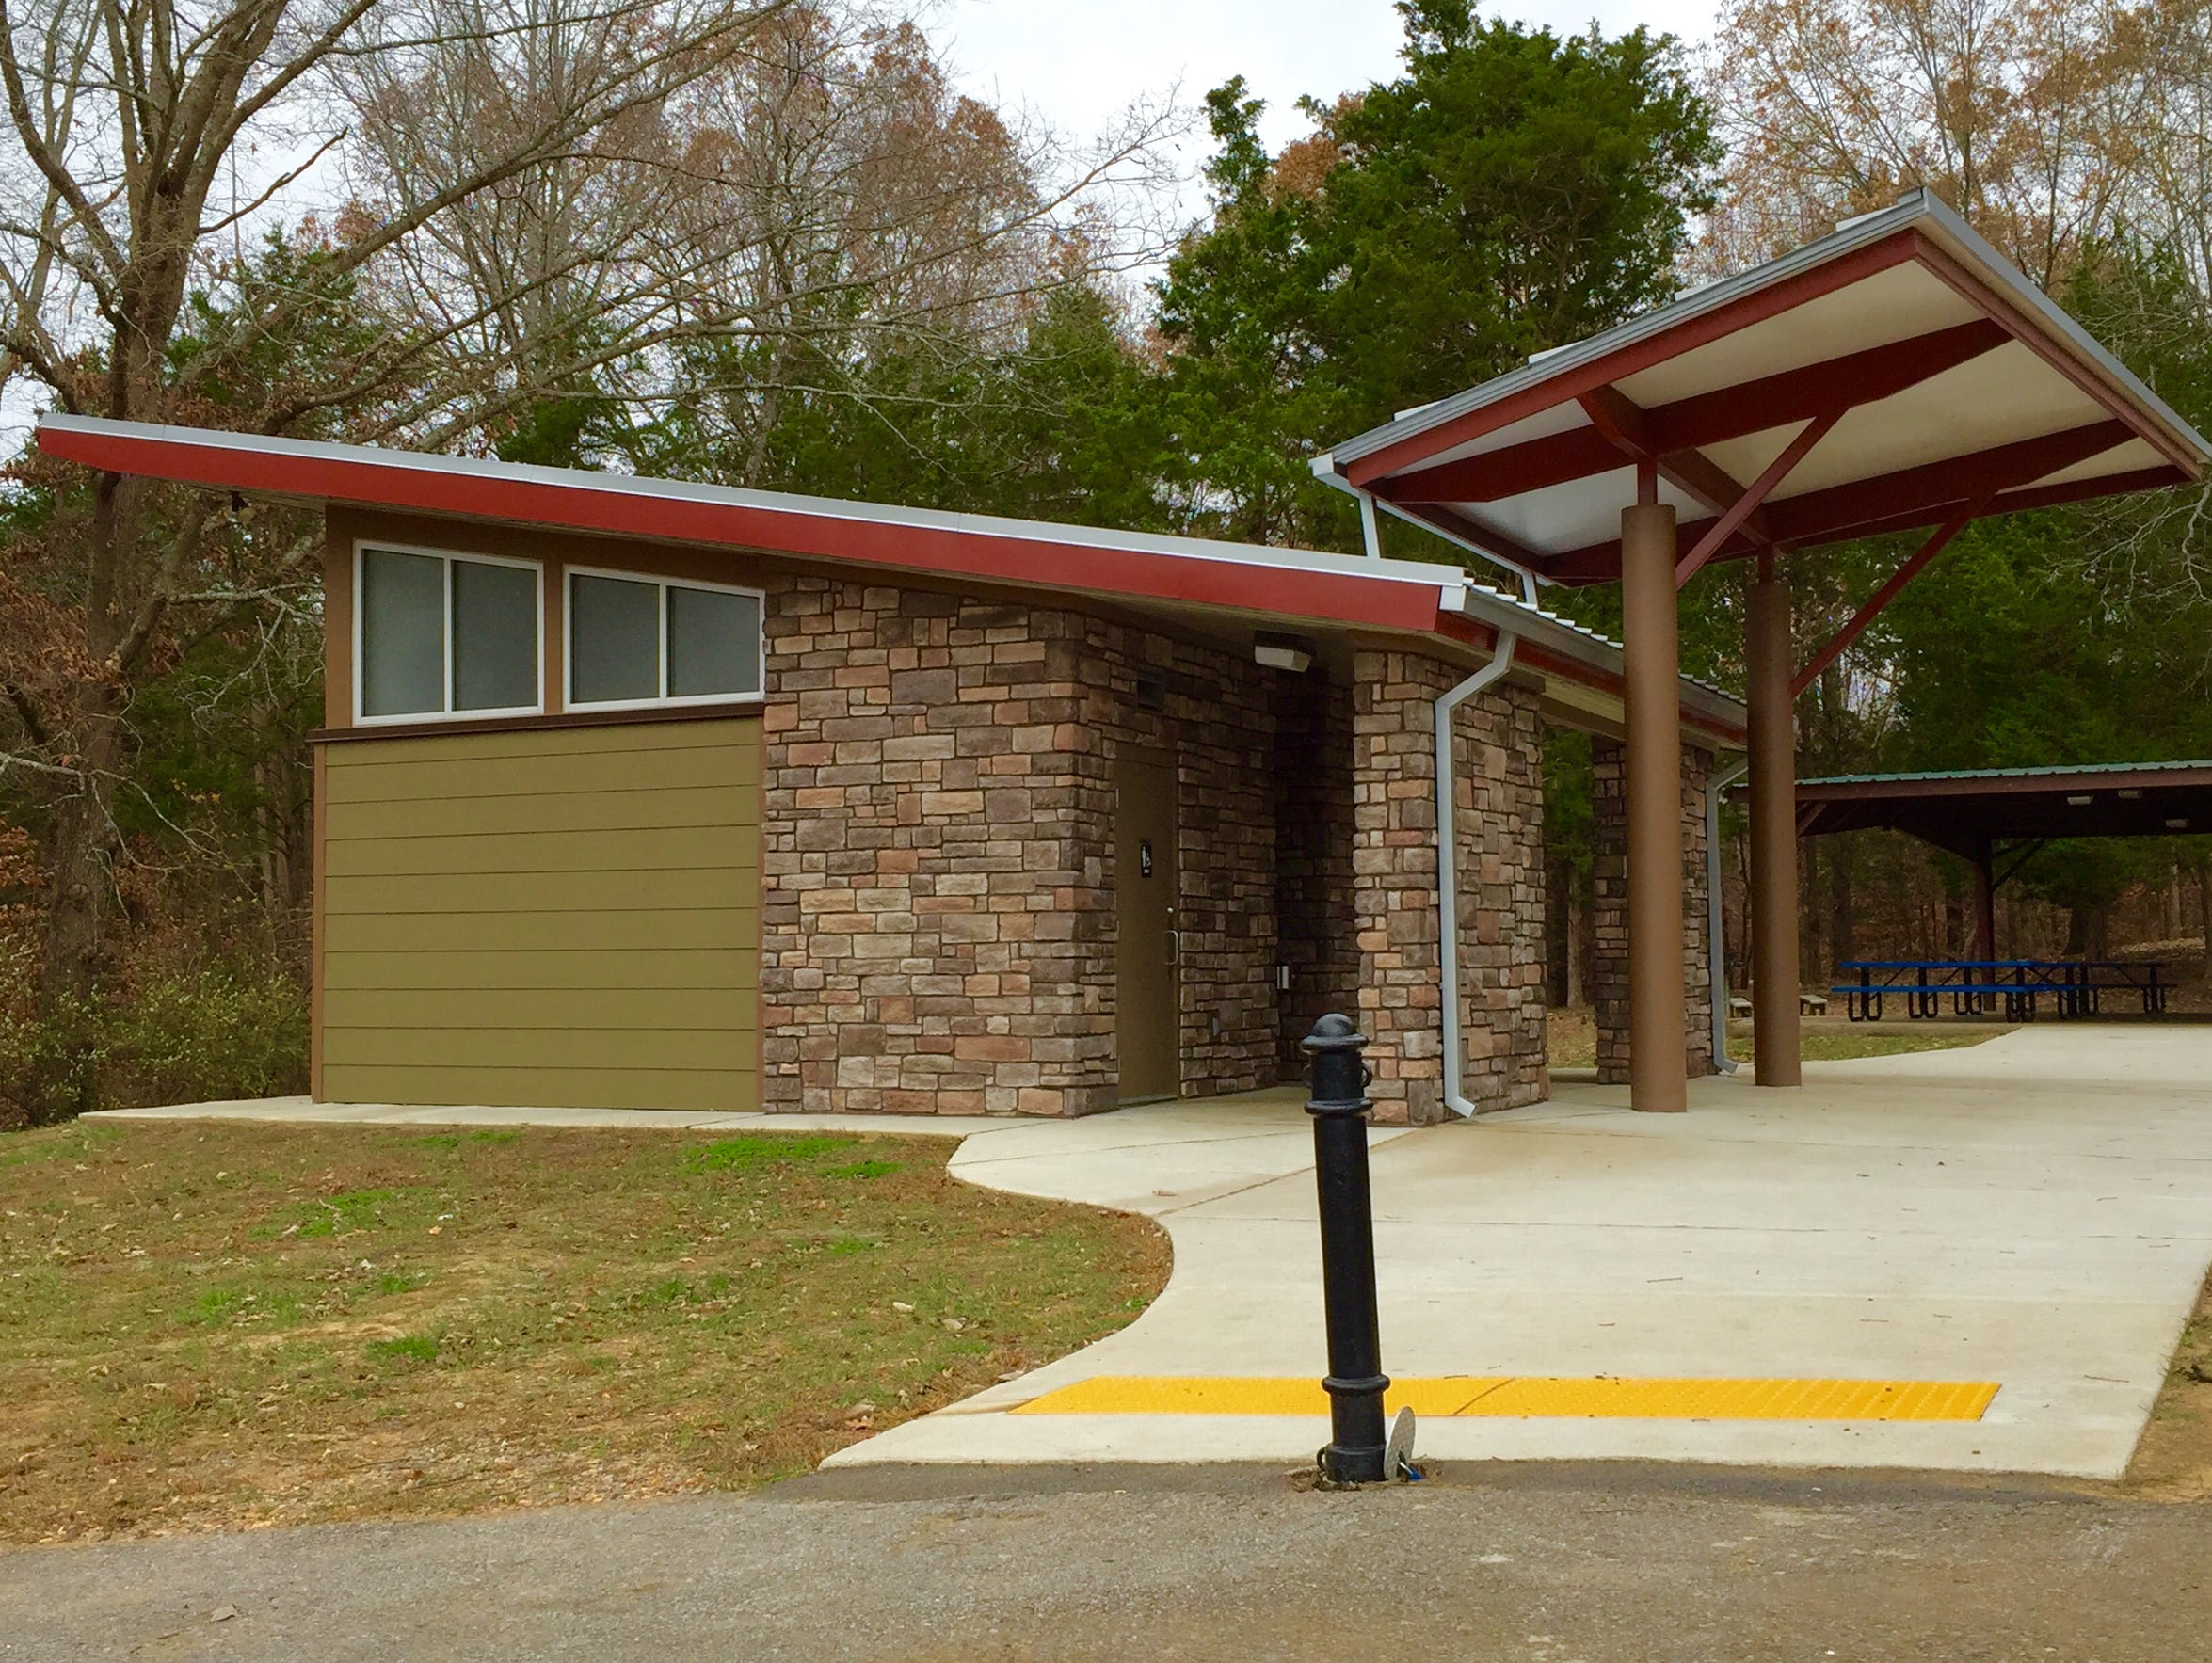 The new comfort station at Rotary Park.